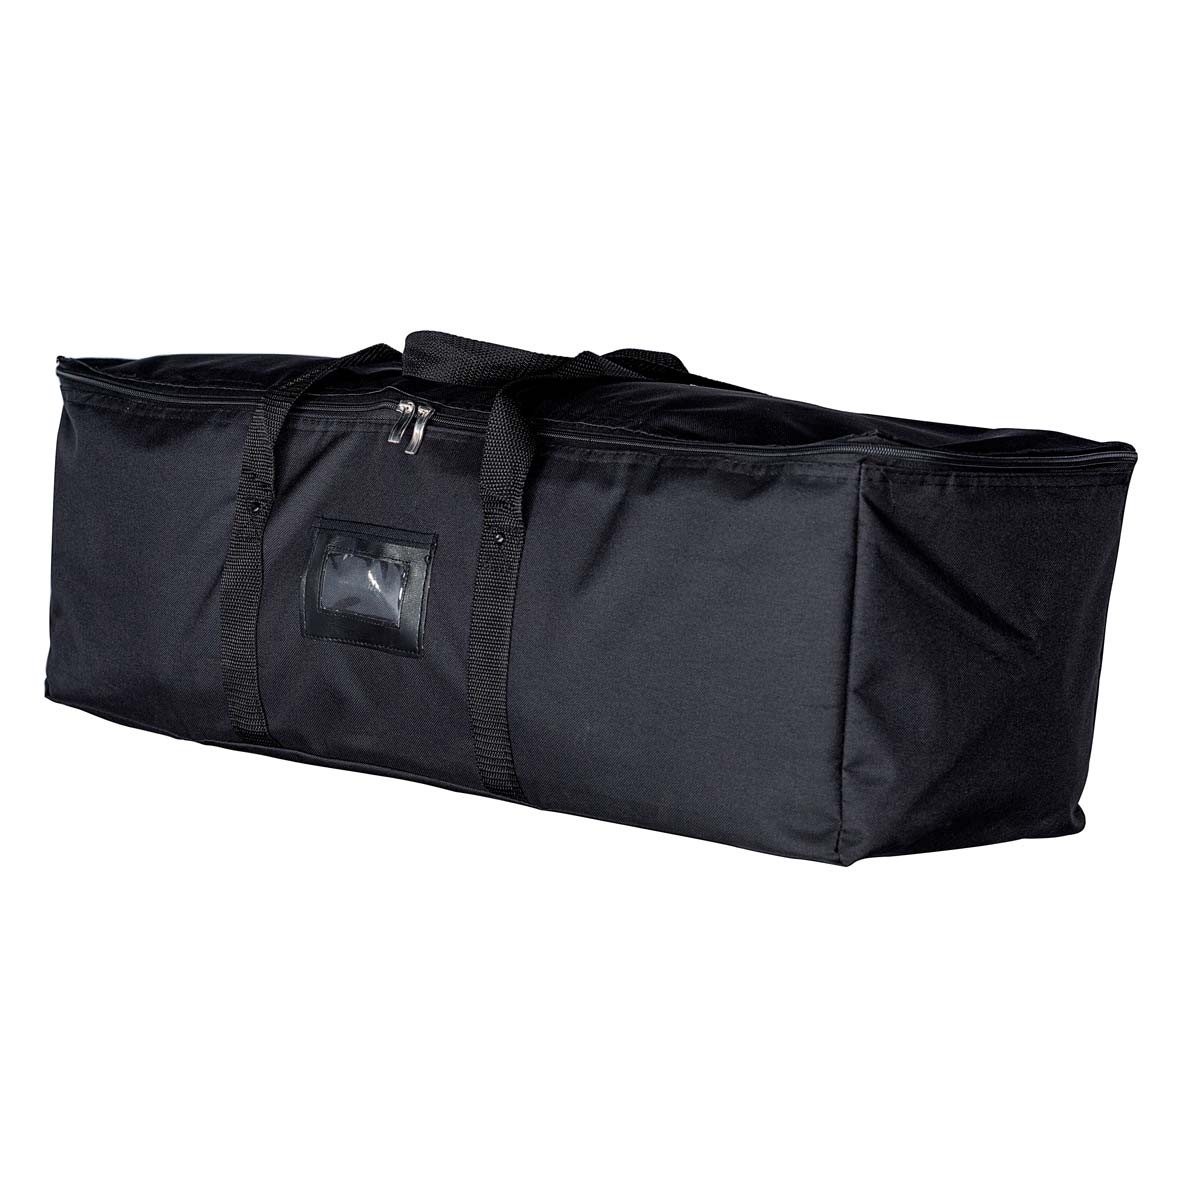 Free Padded Canvas Carrying Bag